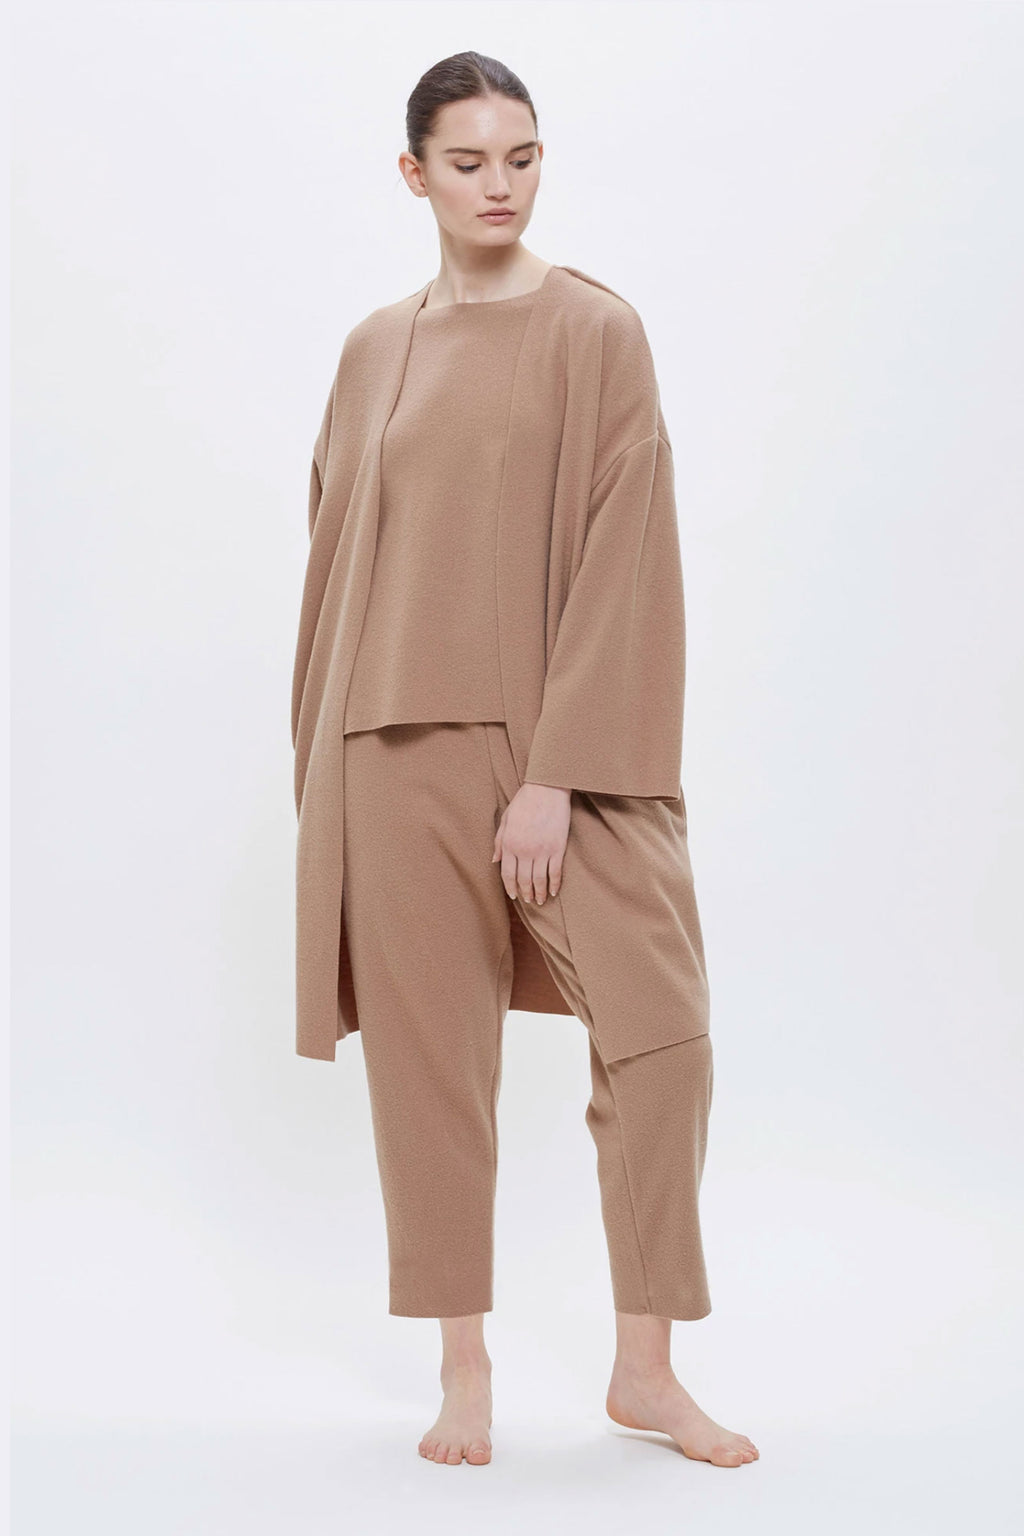 Black Crane No Collar Jacket In Camel